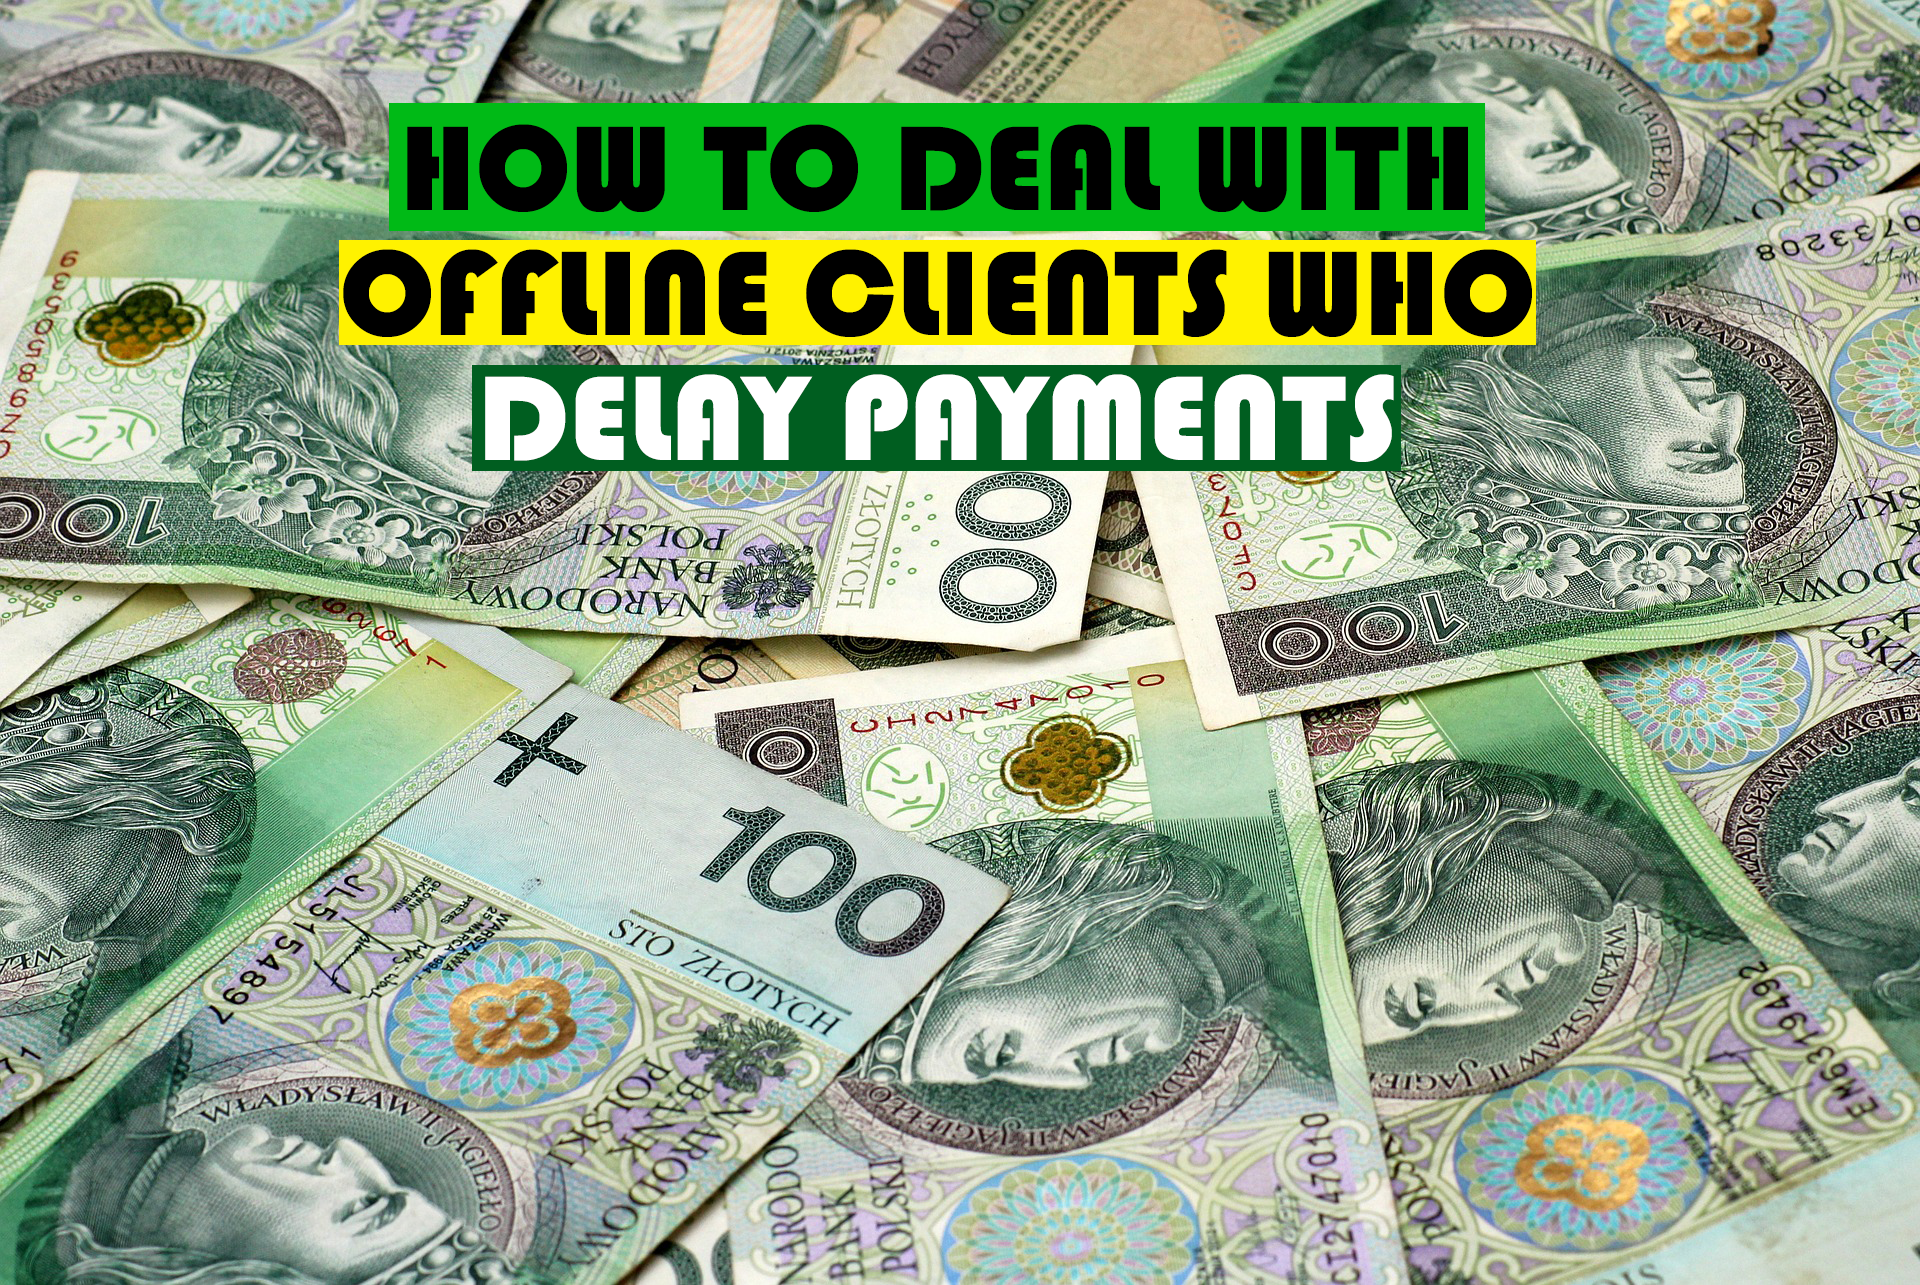 How to Work And Deal With Offline Clients Who go For Months or Years Without Paying